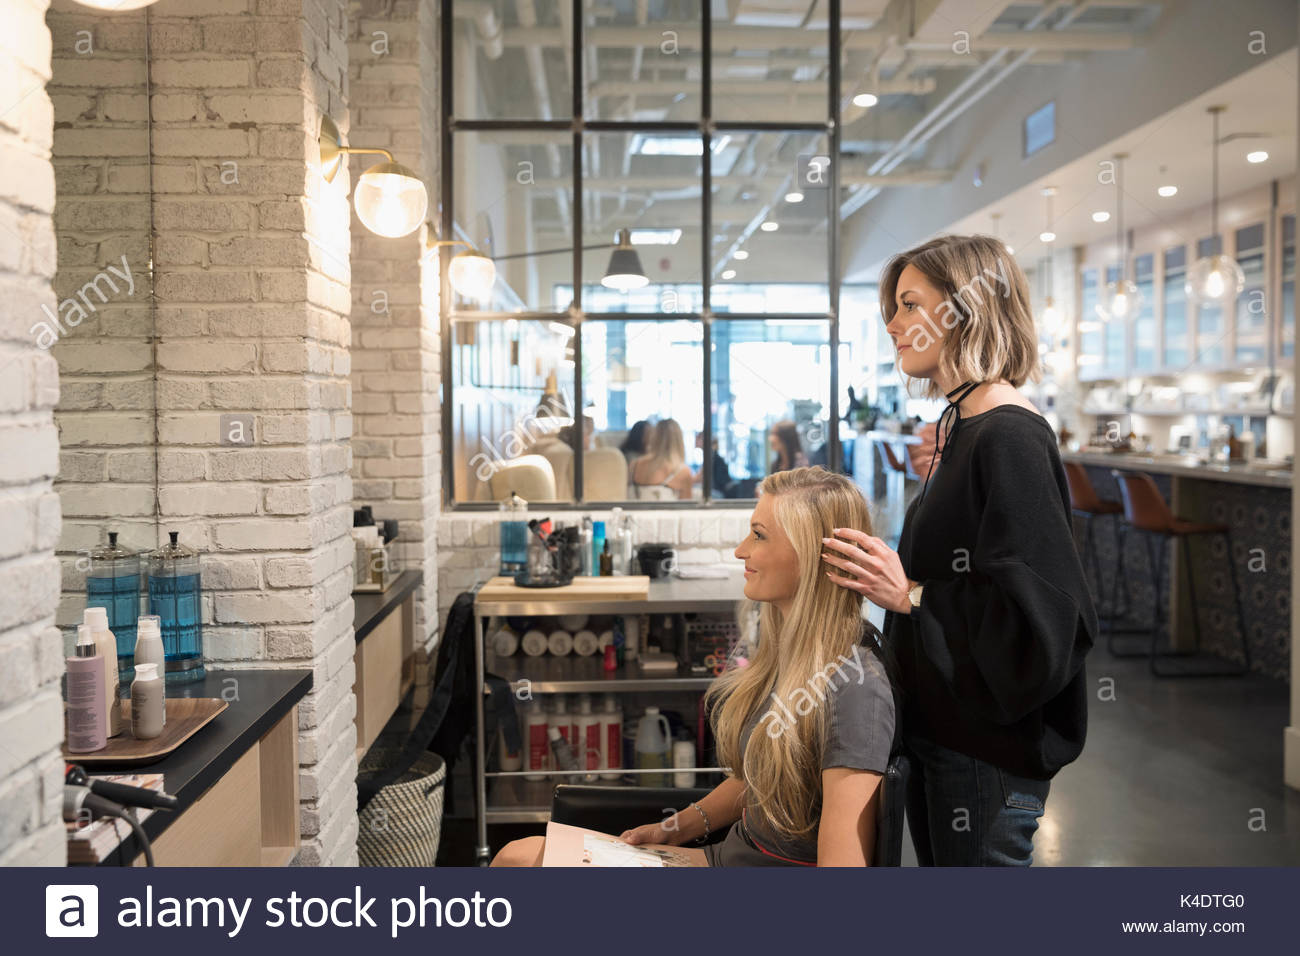 Female hair stylist and customer talking, planning in hair salon - Stock Image